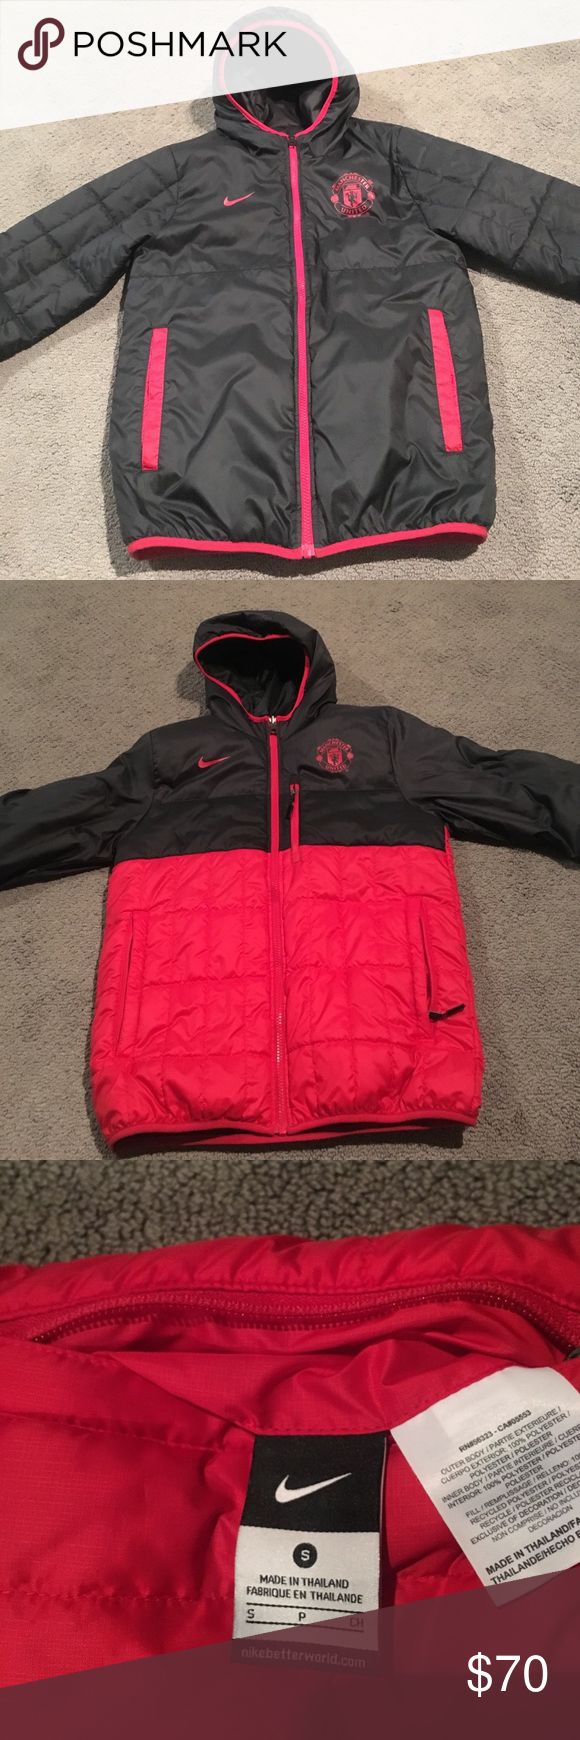 Nike Manchester United training jacket Manchester United training jacket that is reversible, one side is all black and the other is black and red Nike Jackets & Coats Utility Jackets